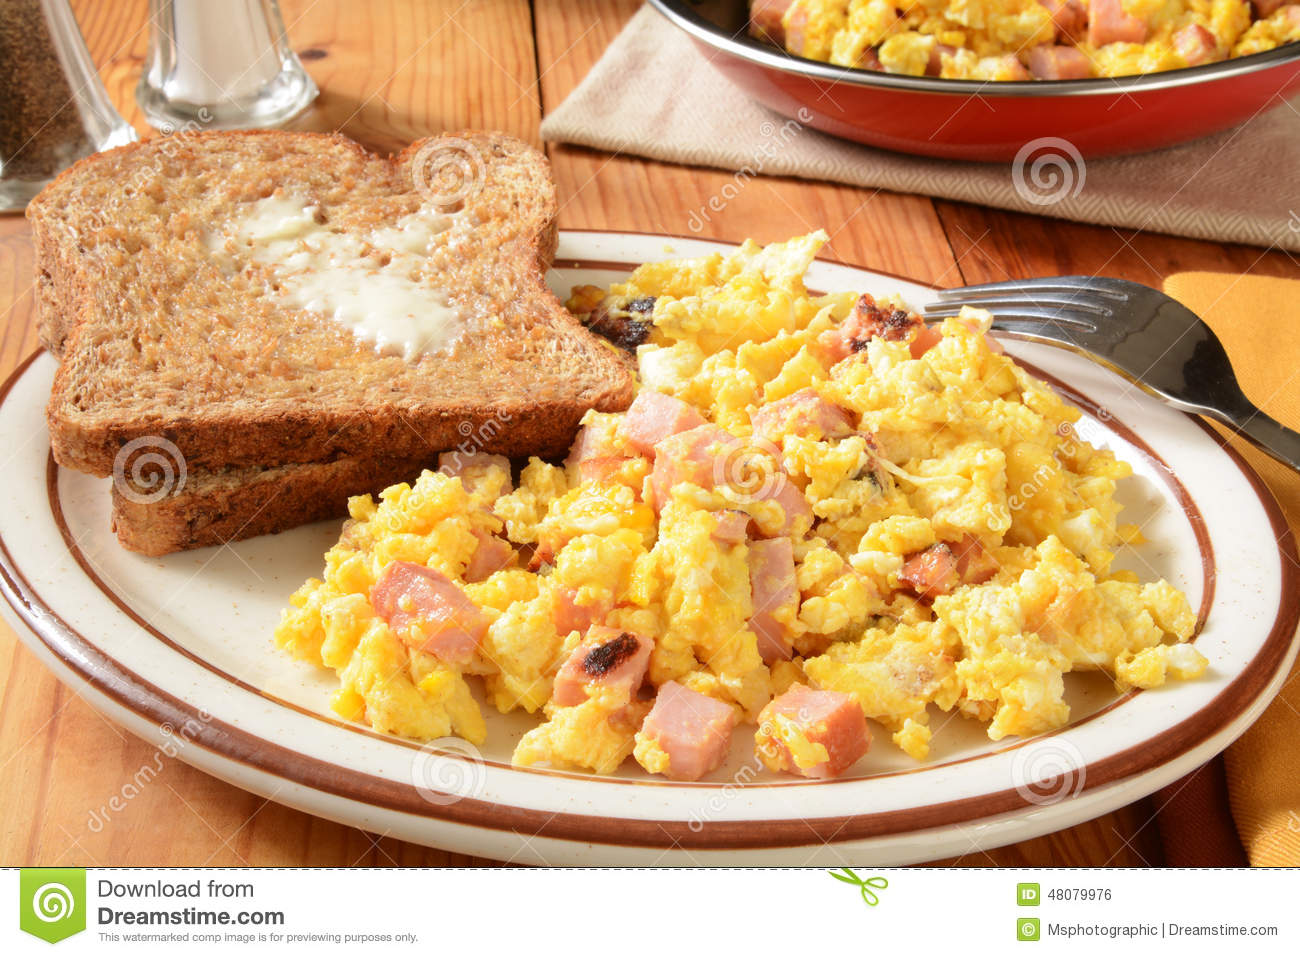 Download Scrambled Eggs And Toast Stock Photo Image Of Meal Cheese